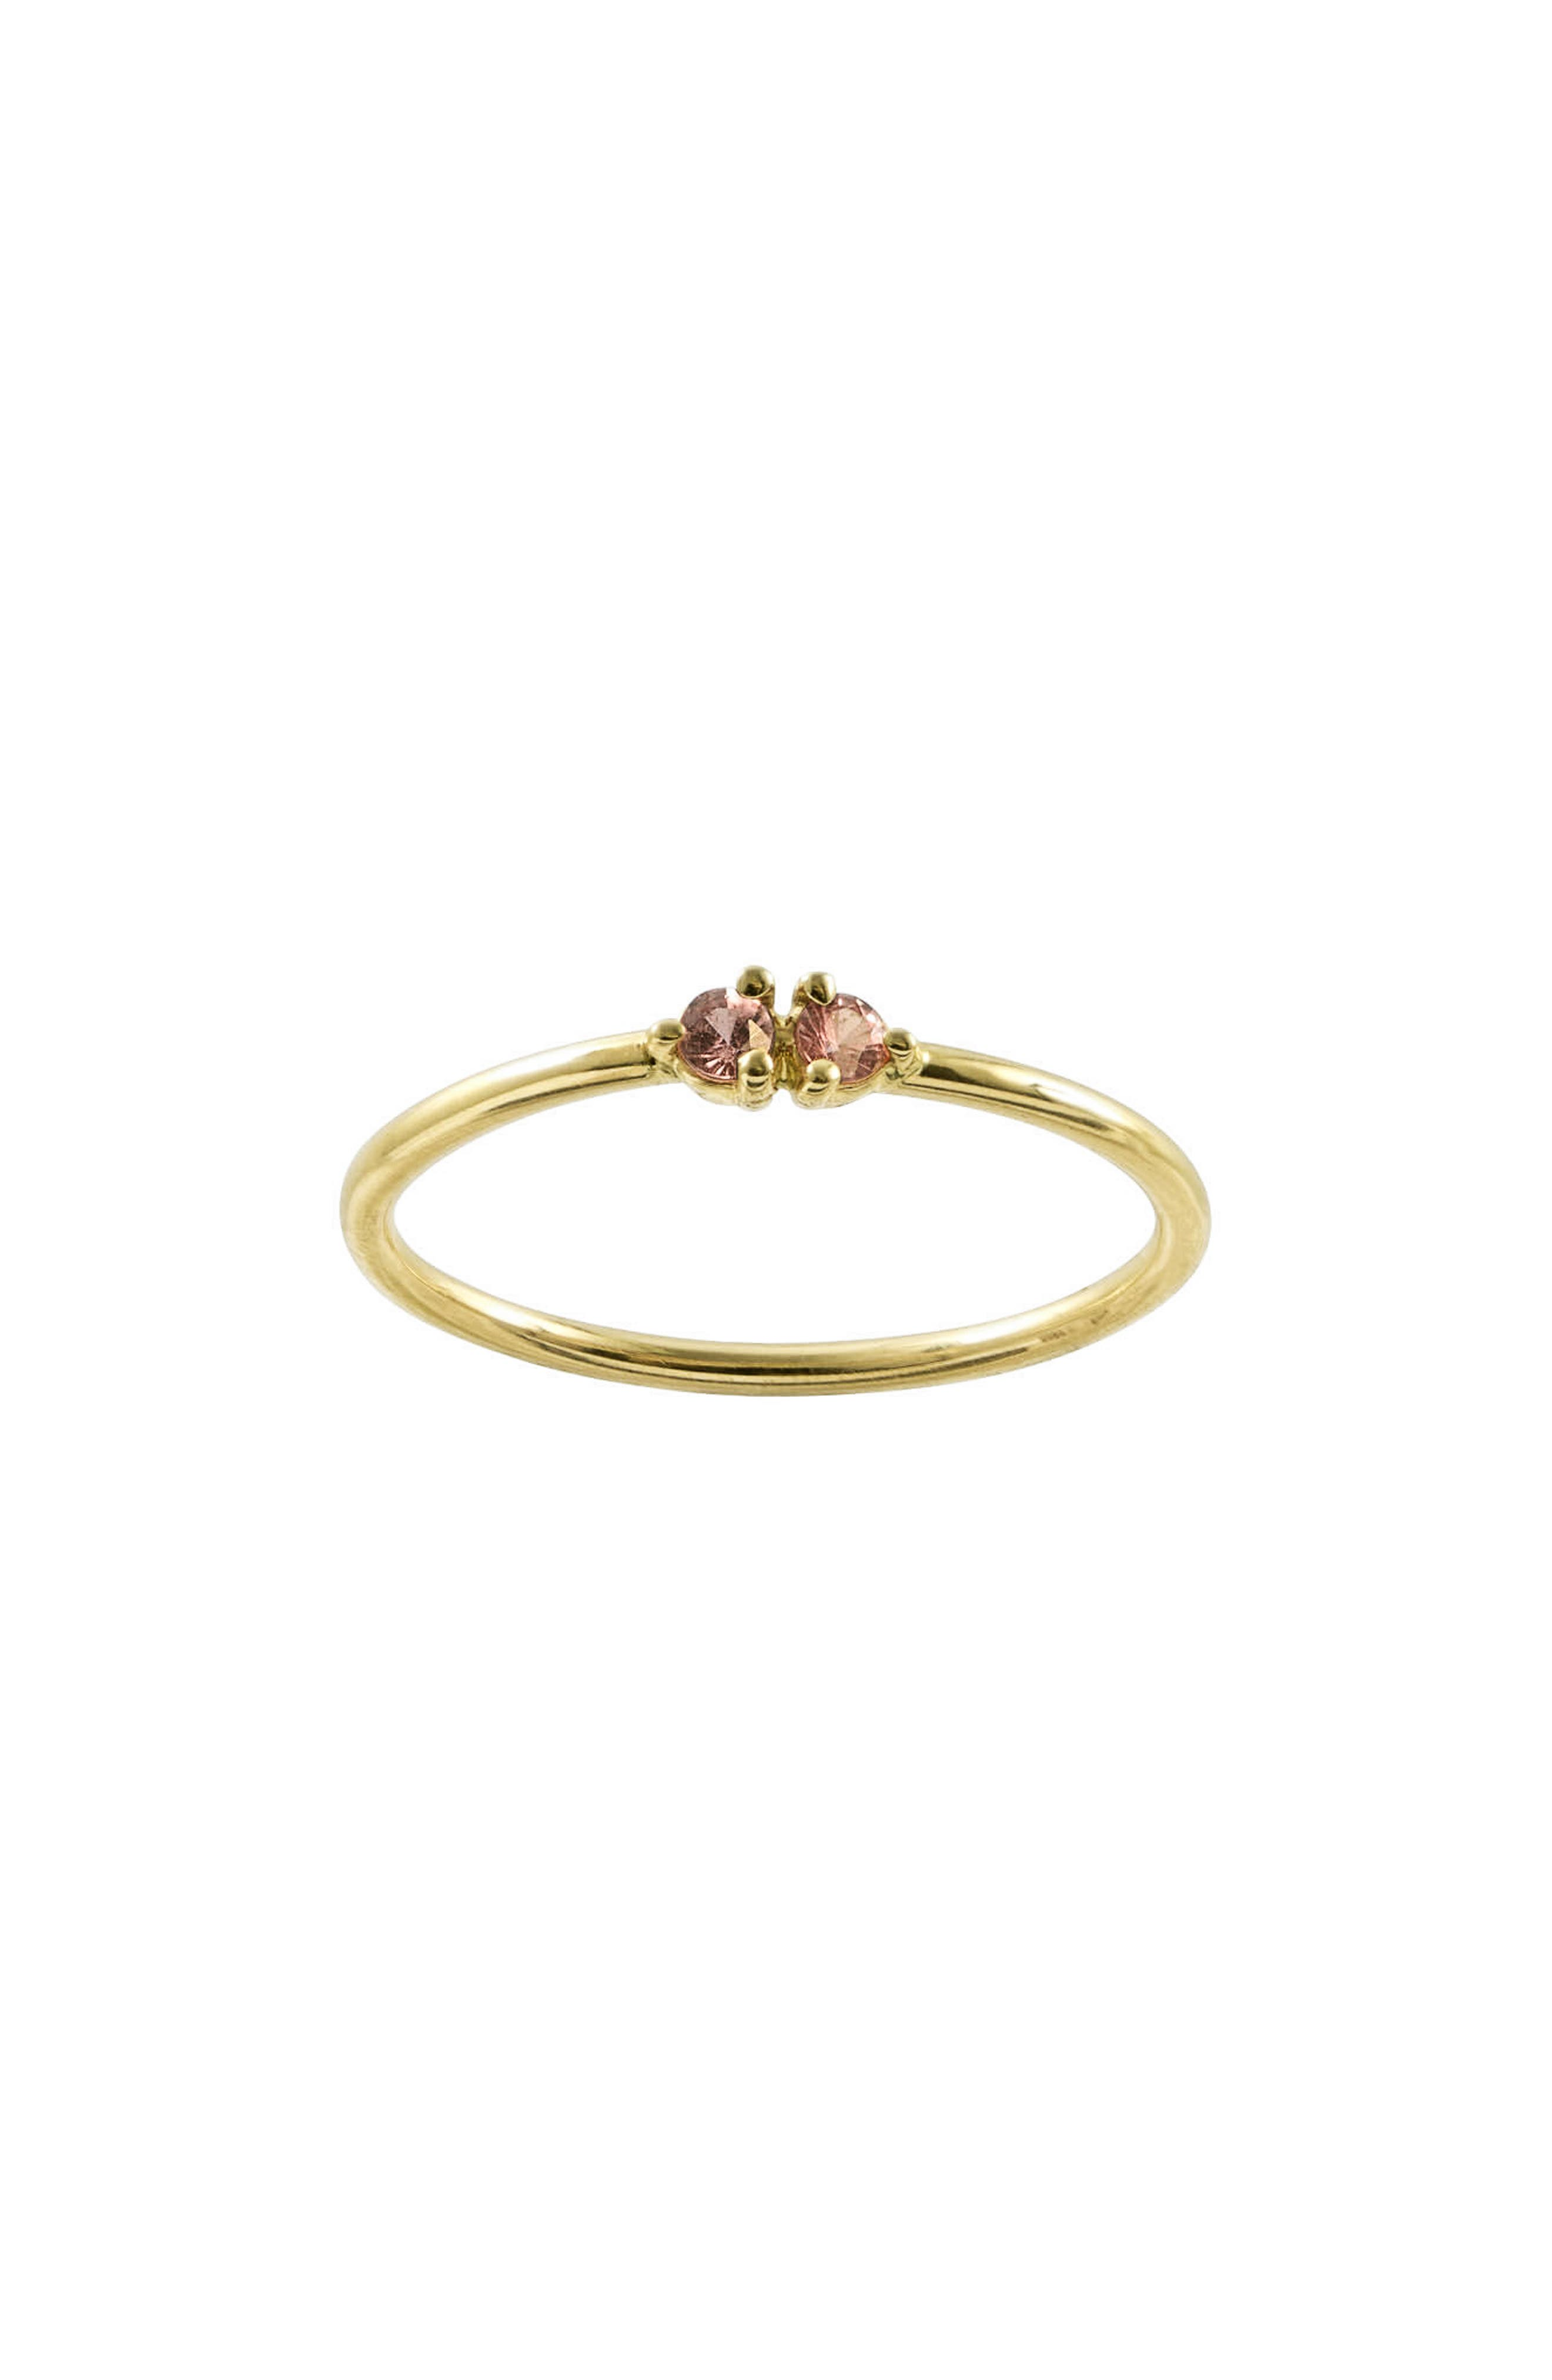 Double Stone Ring,                         Main,                         color, PINK TOURMALINE